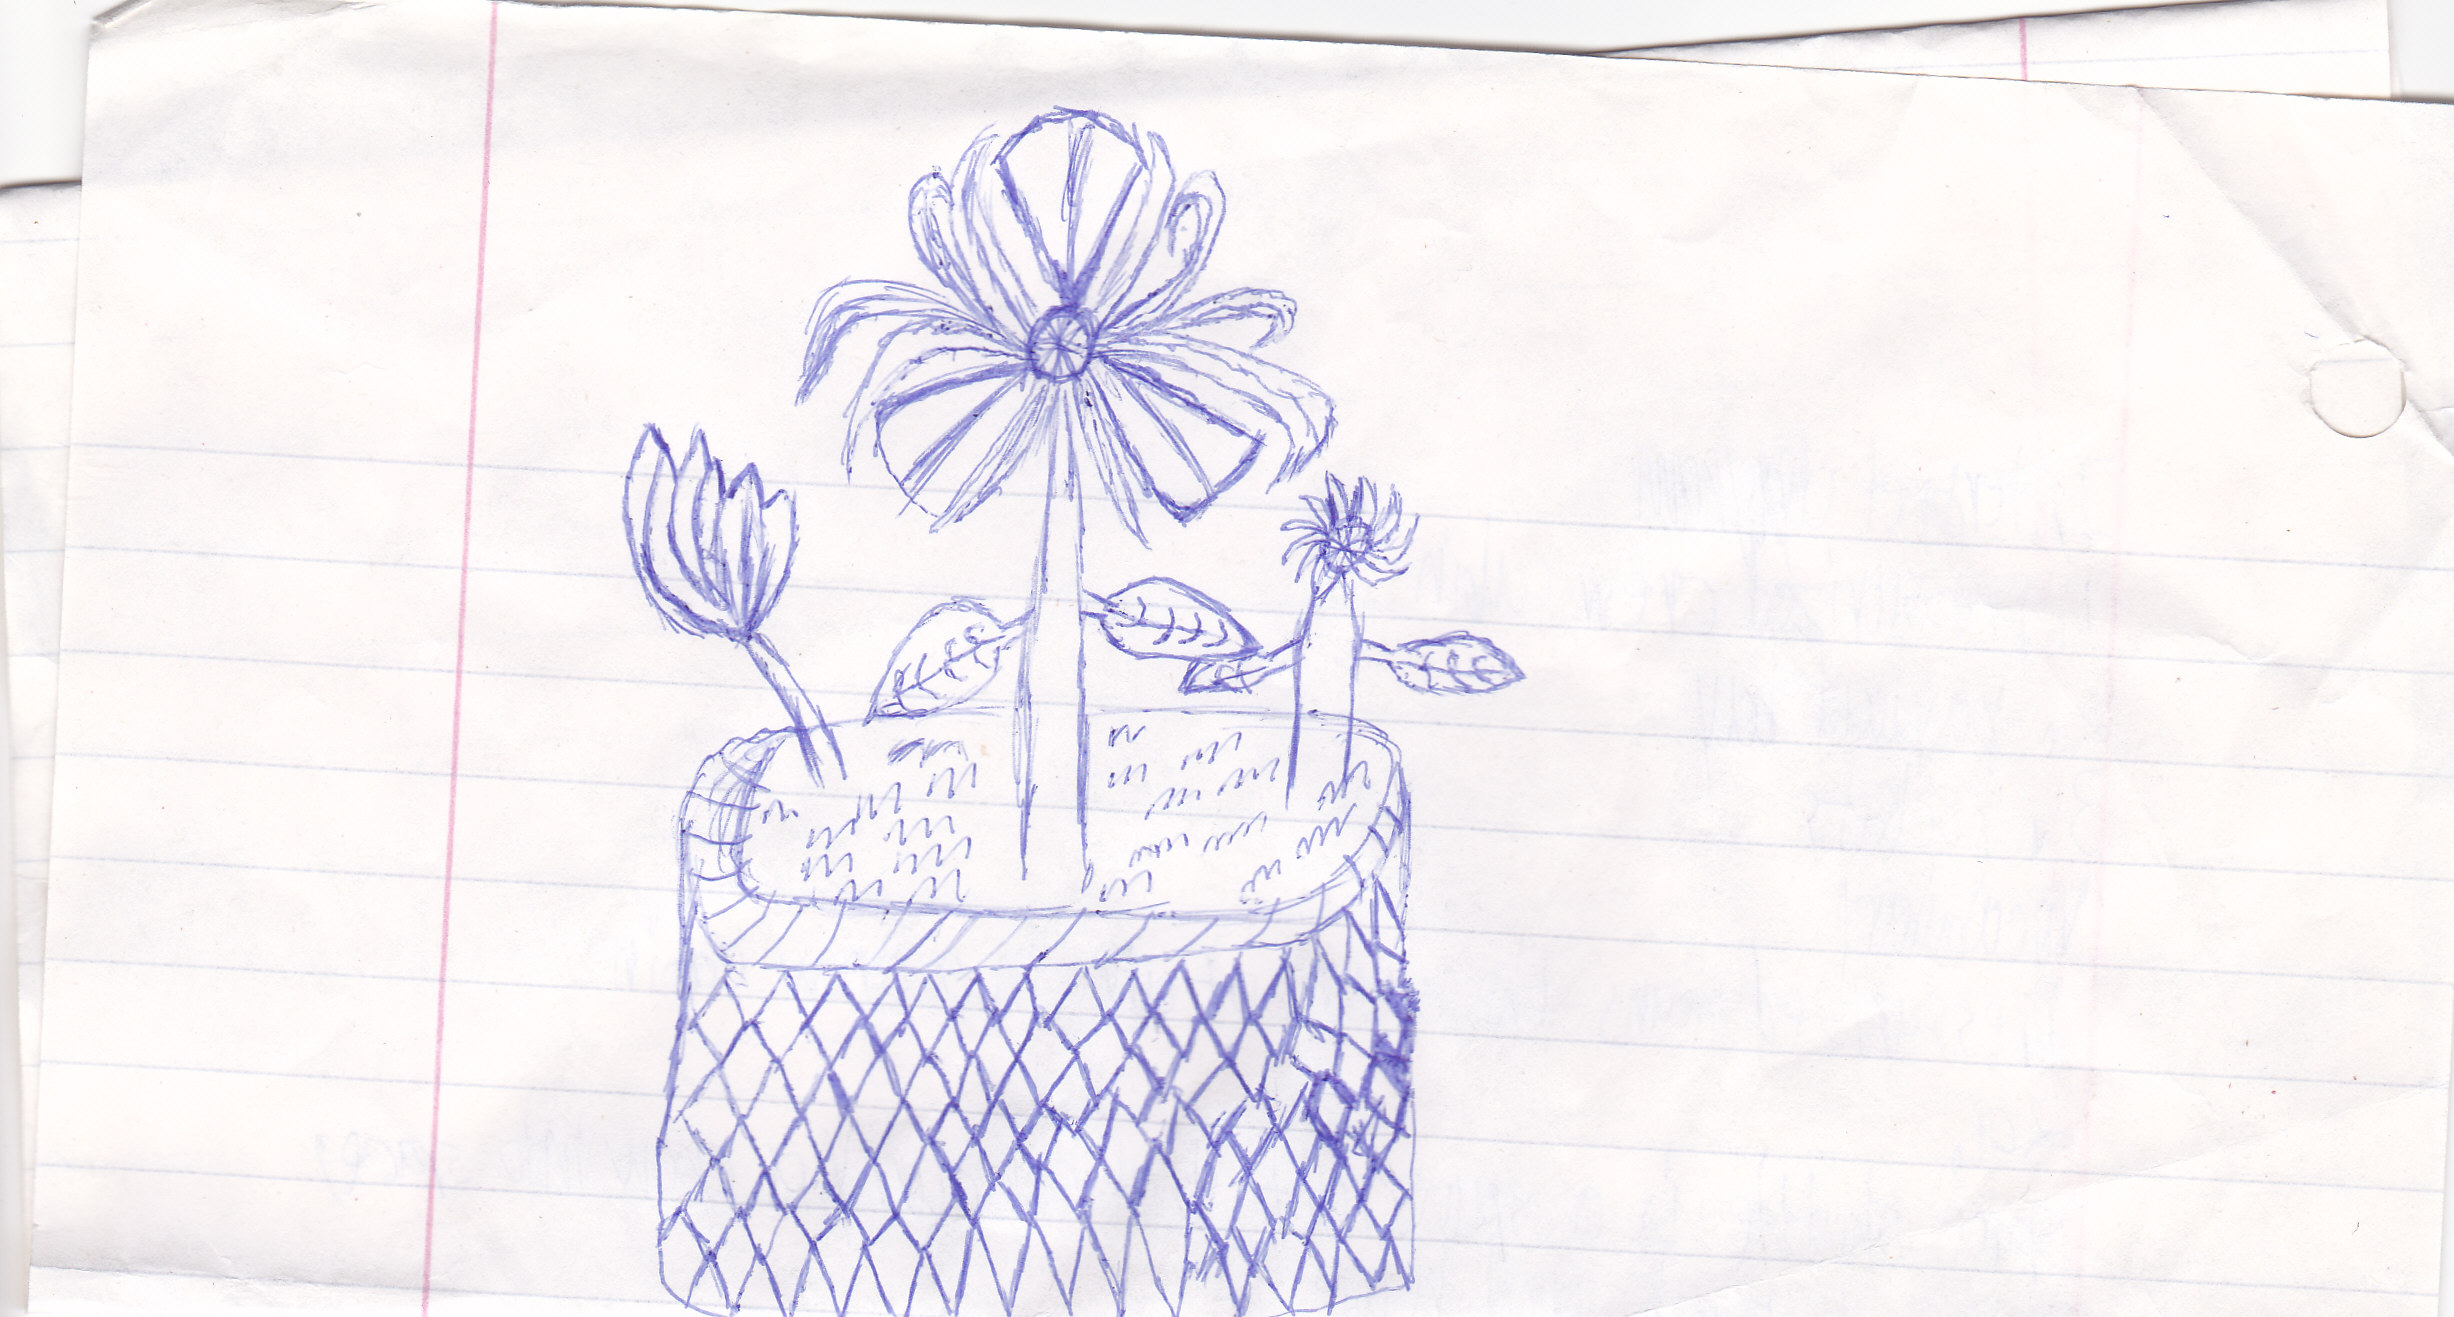 My simple Doodle